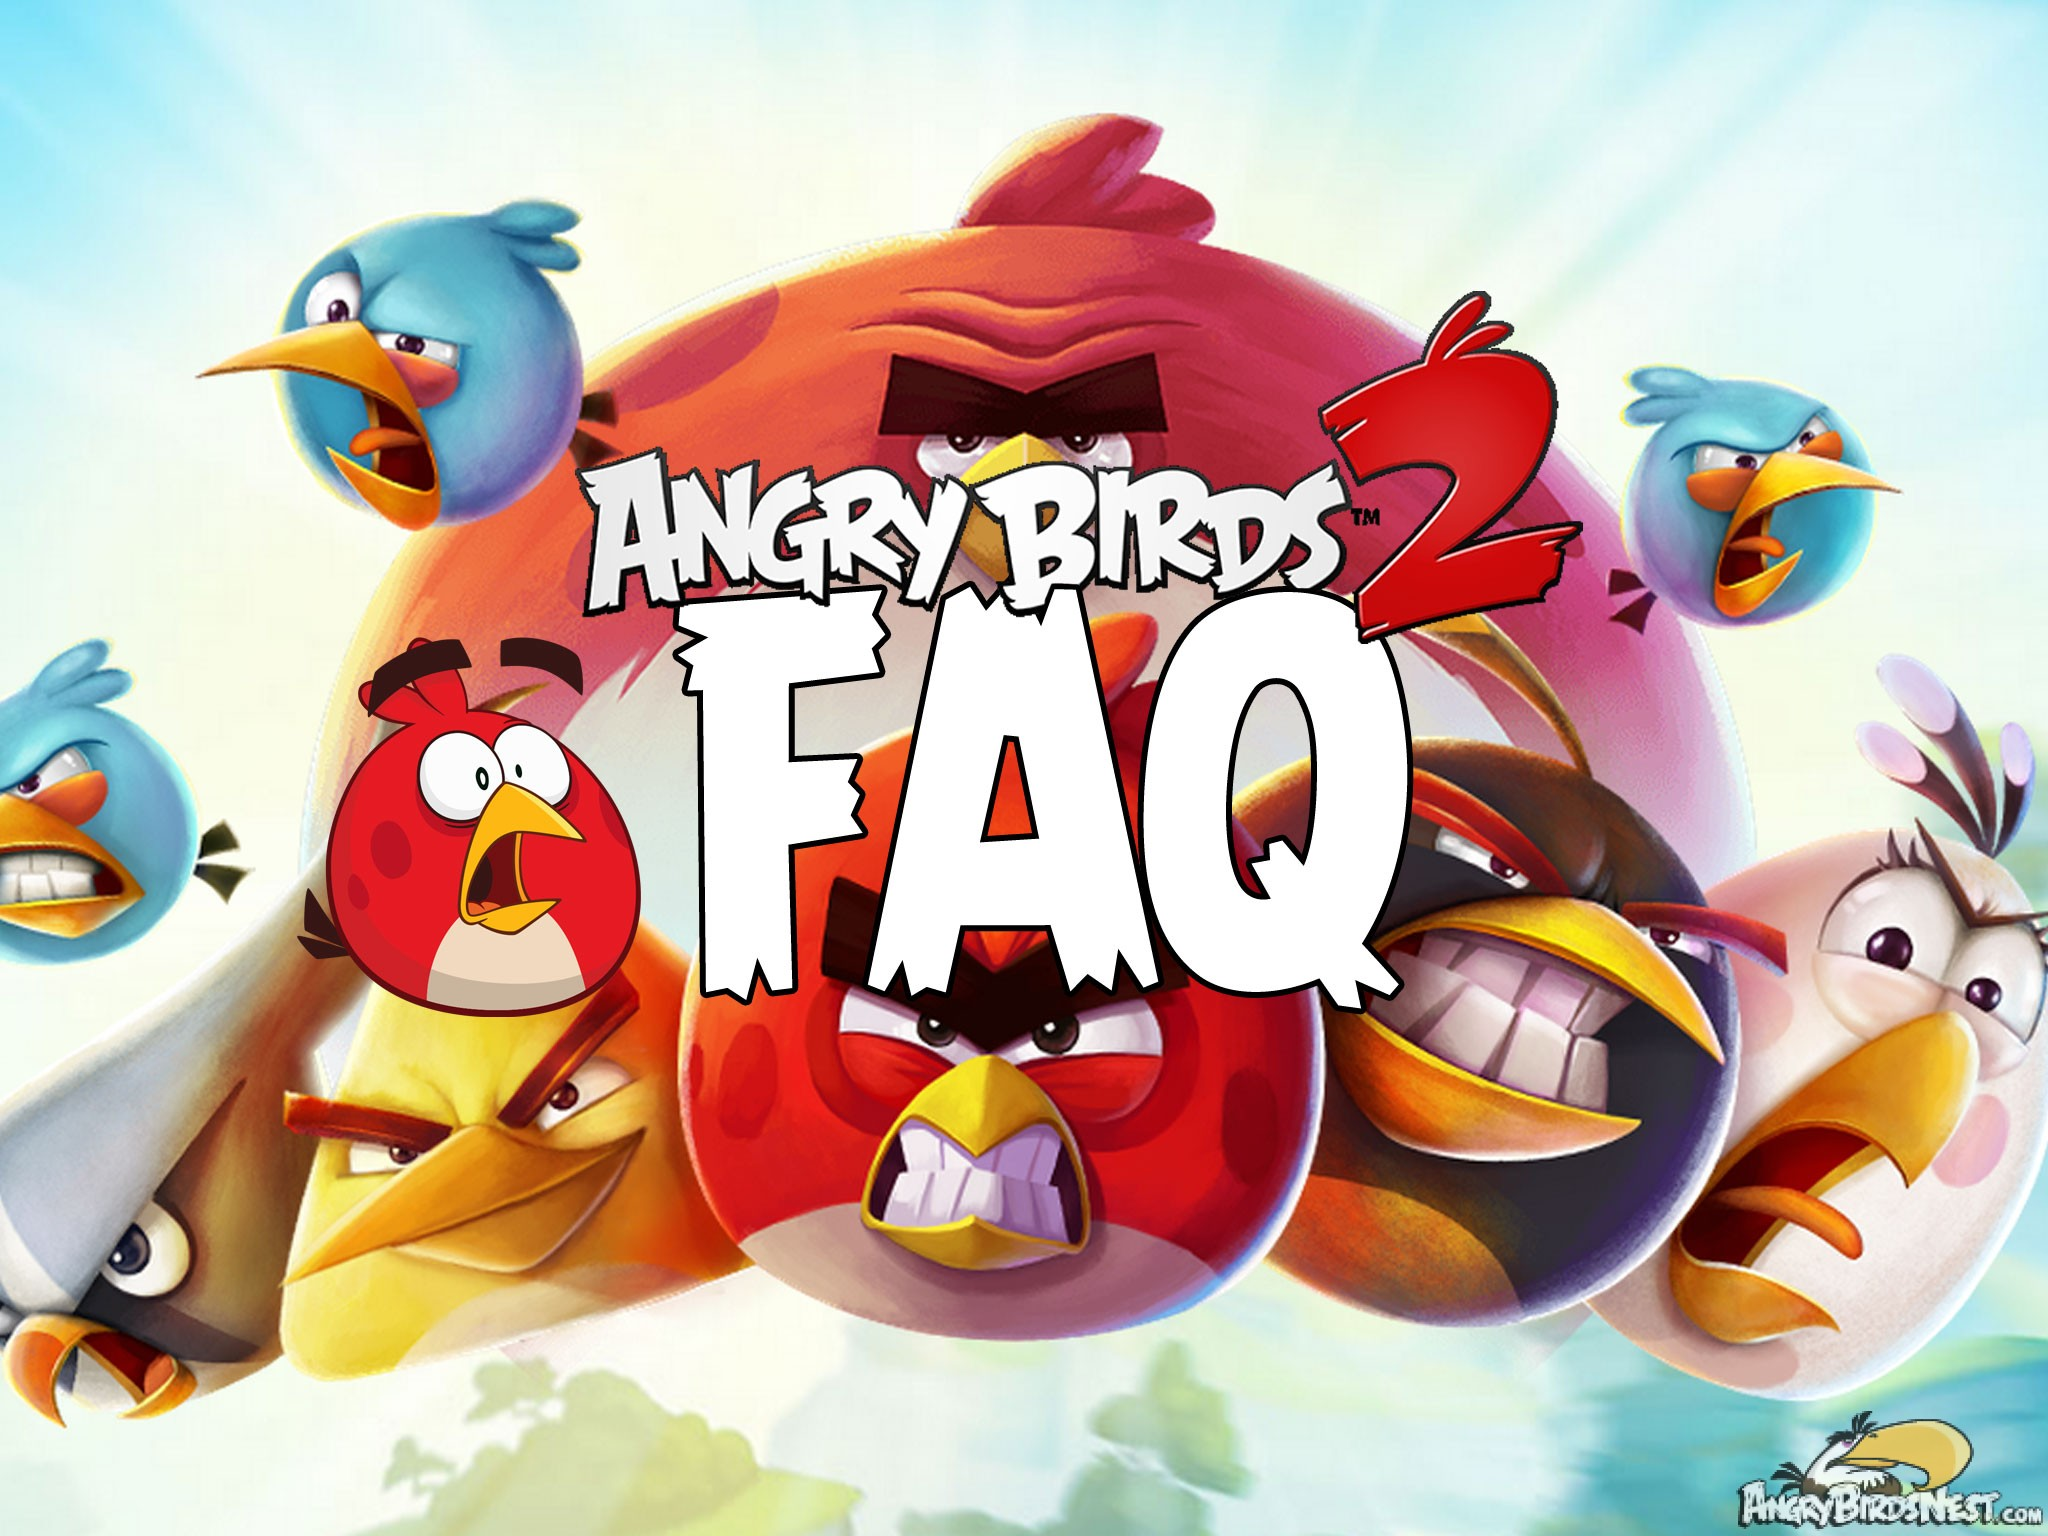 Angry Birds Toons Characters Eggs By Brunomilan13 On: Angry Birds 2 FAQ (Frequently Asked Questions